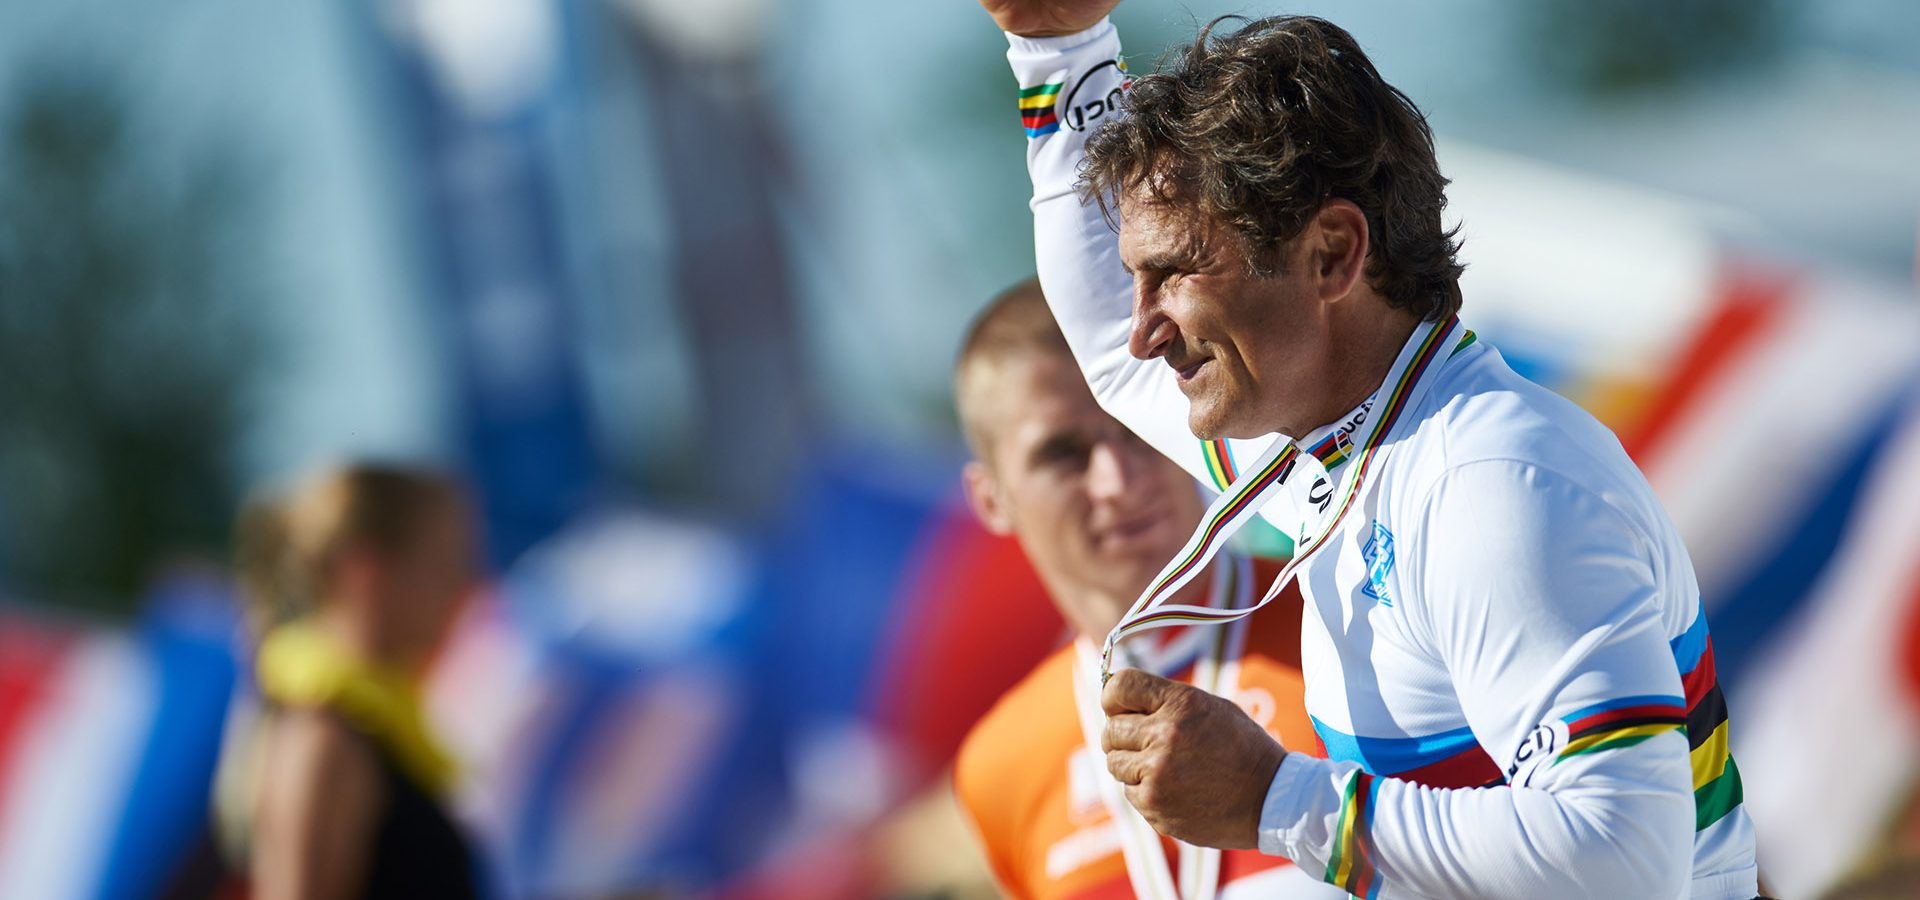 Nottwil (SUI) 2nd August 2015. UCI Para-Cycling Road World Championship 2015 - Road race - BMW Ambassador Alessandro Zanardi (ITA). This image is copyright free for editorial use © BMW AG